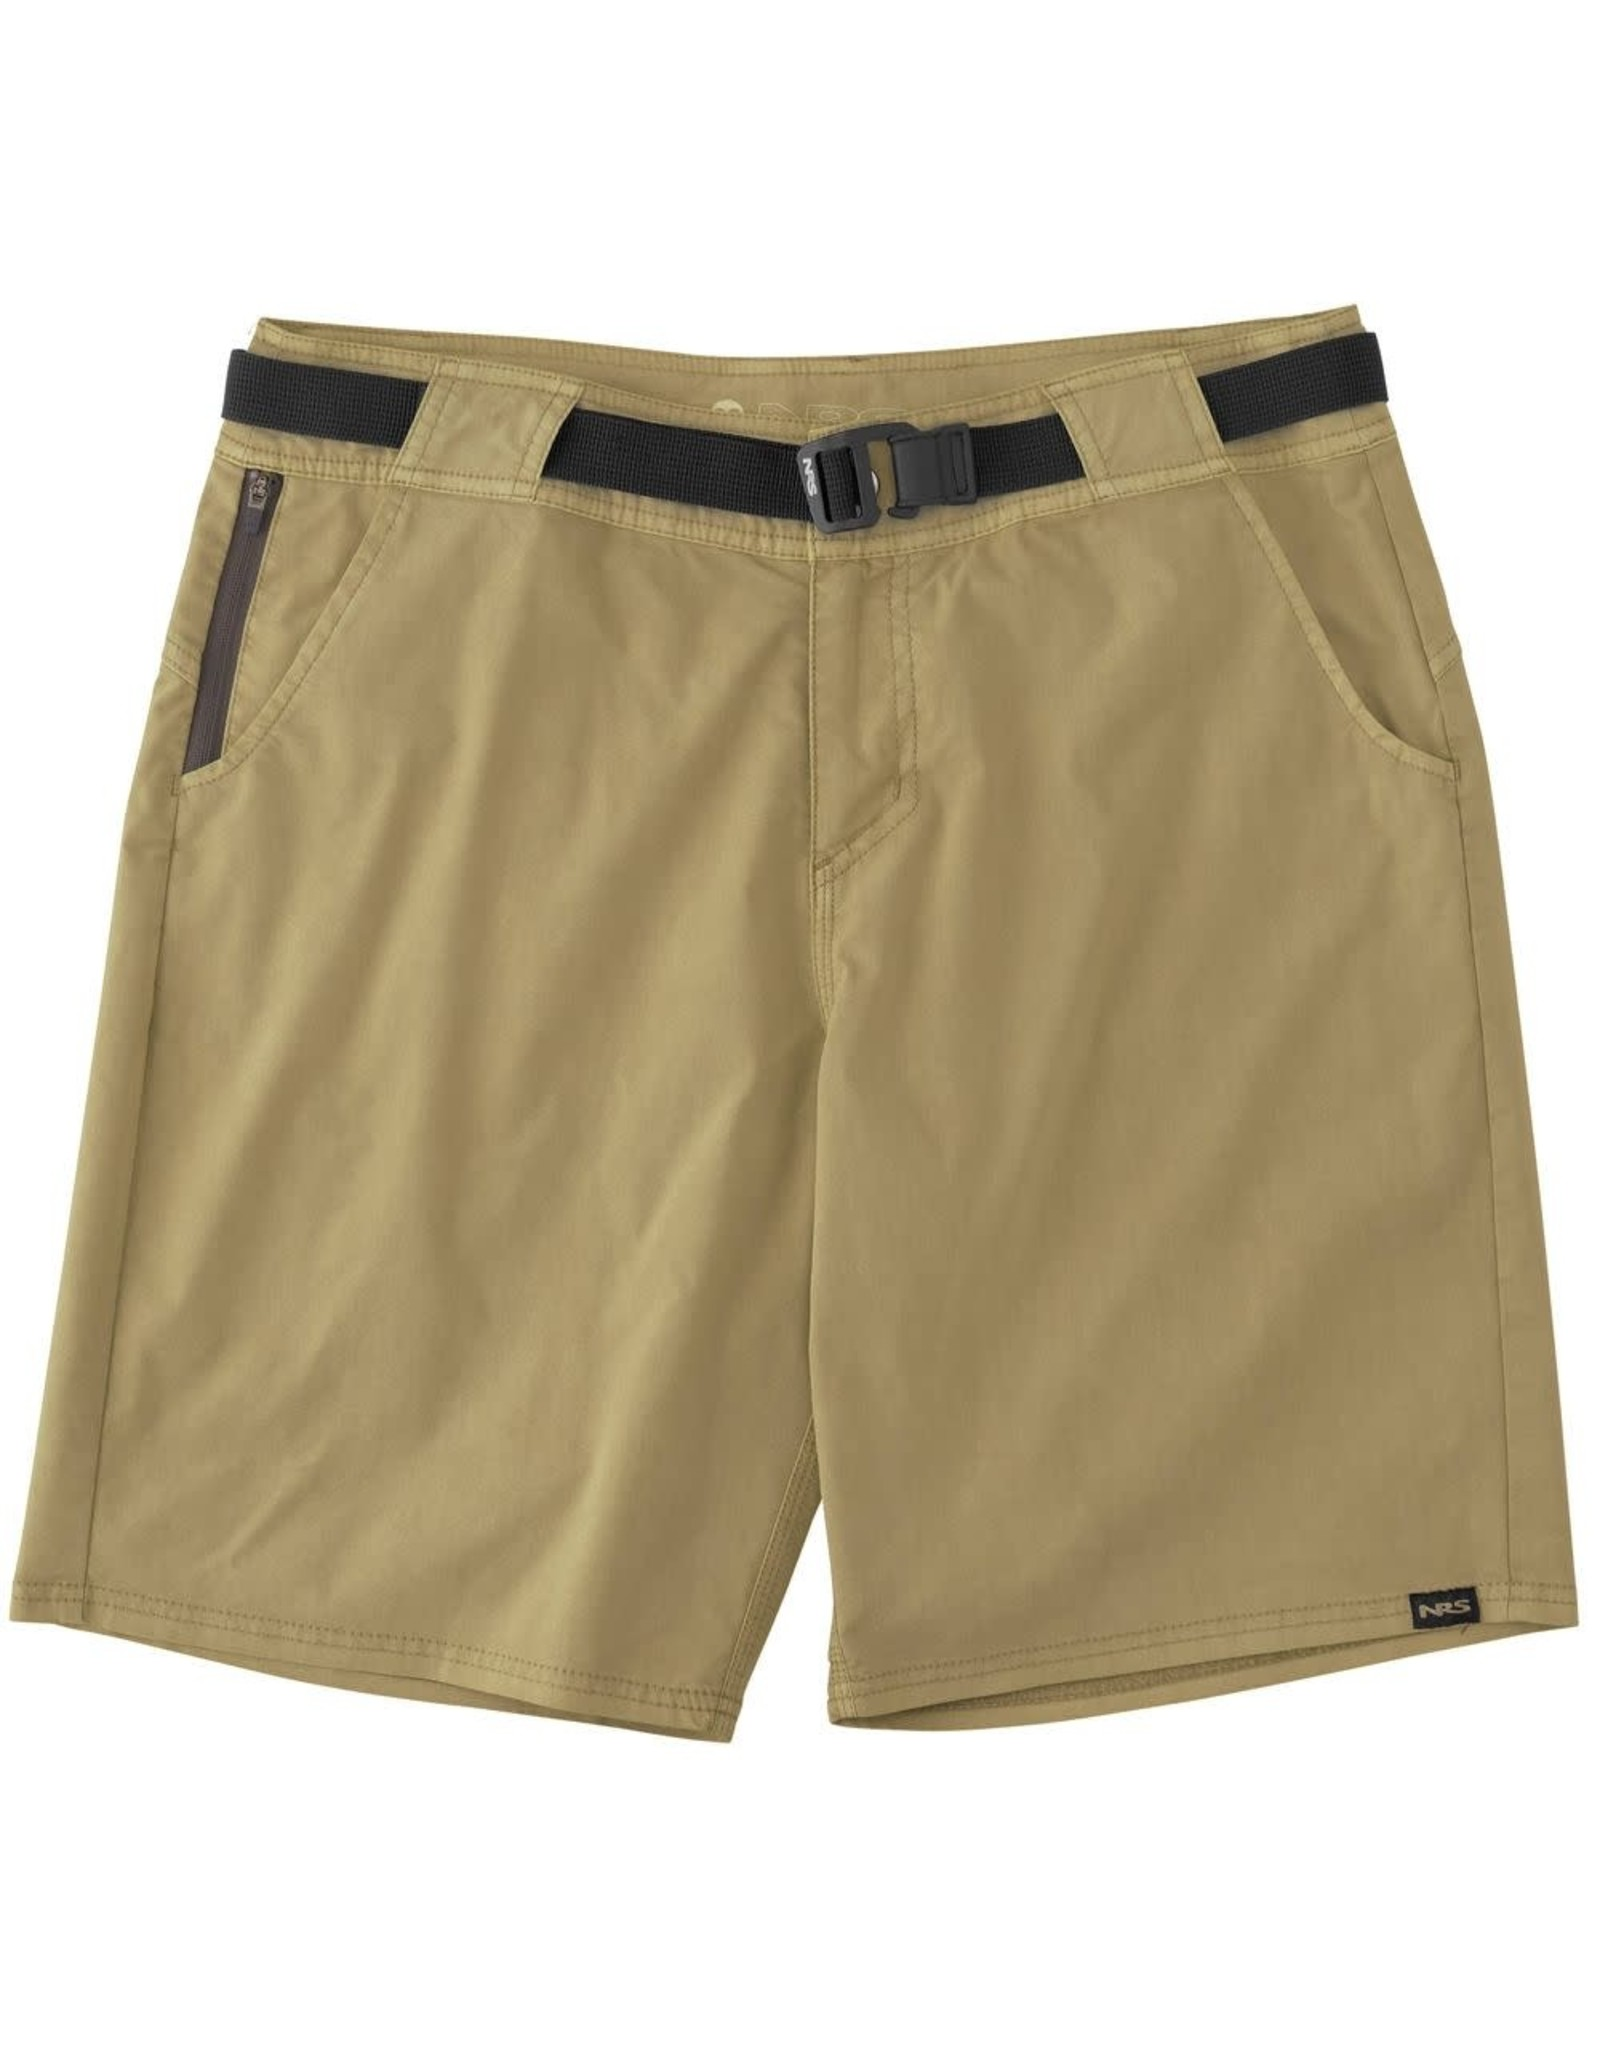 NRS NRS Men's Canyon Short